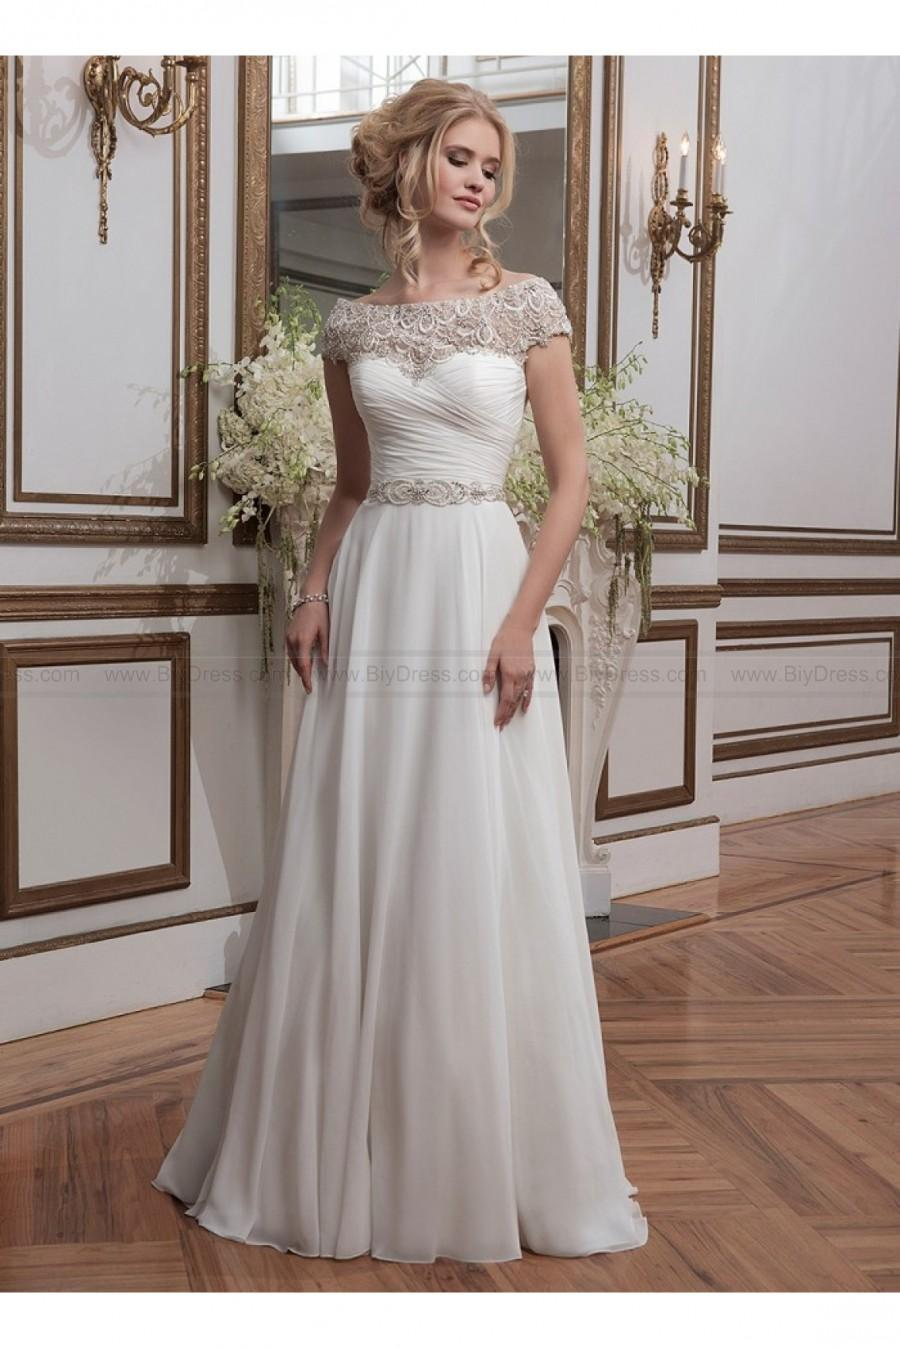 Beaded Embroidery And Chiffon Ball Gown Justin Alexander 8799 ...